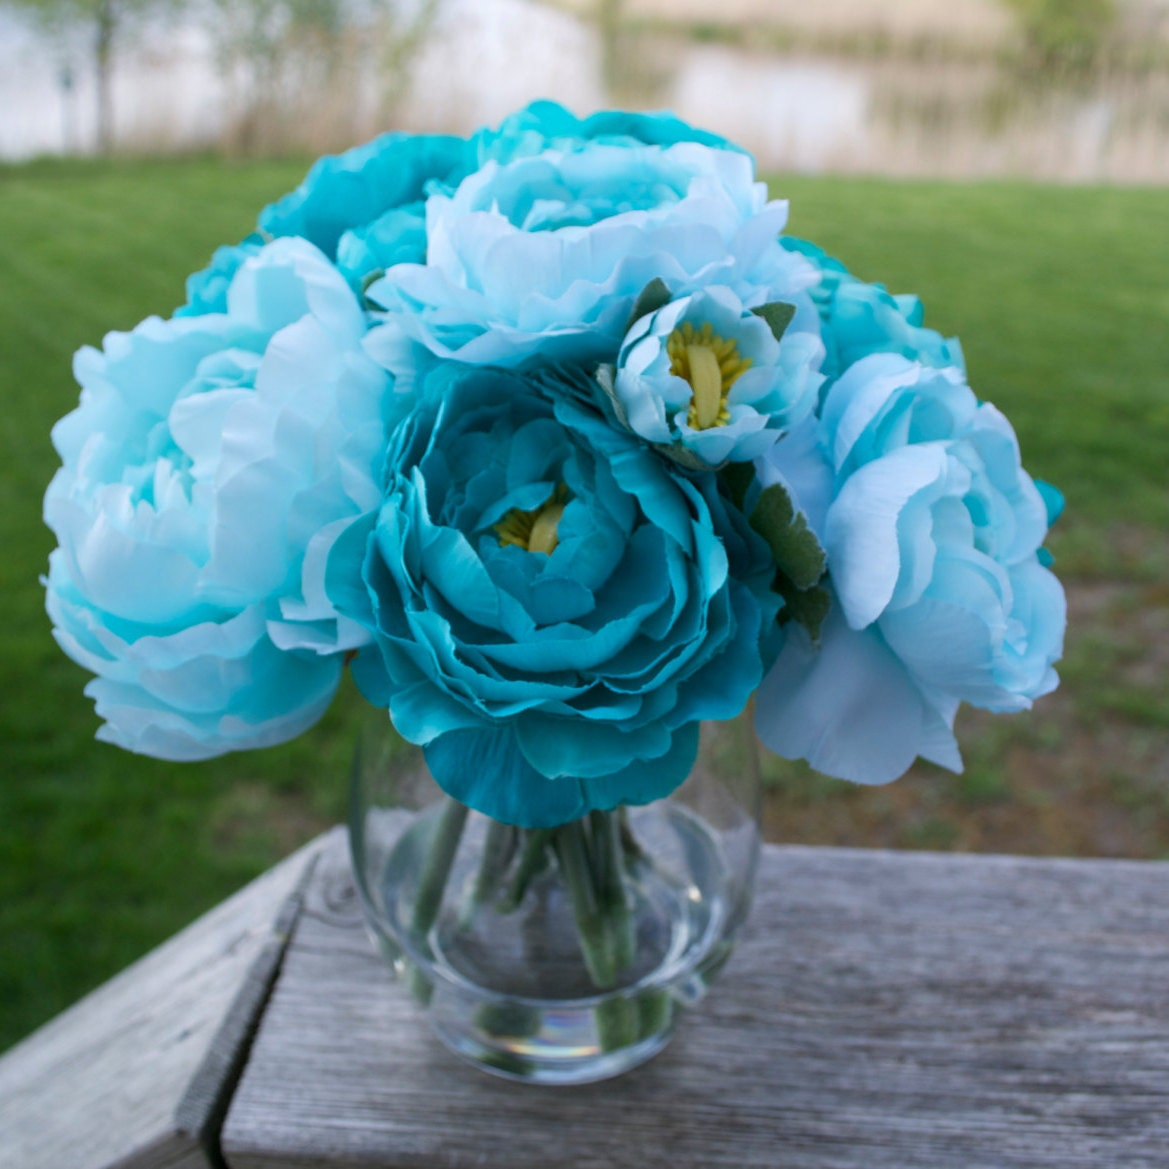 Faux Floral Arrangements for the Home & by ChicagoSilkFlorist